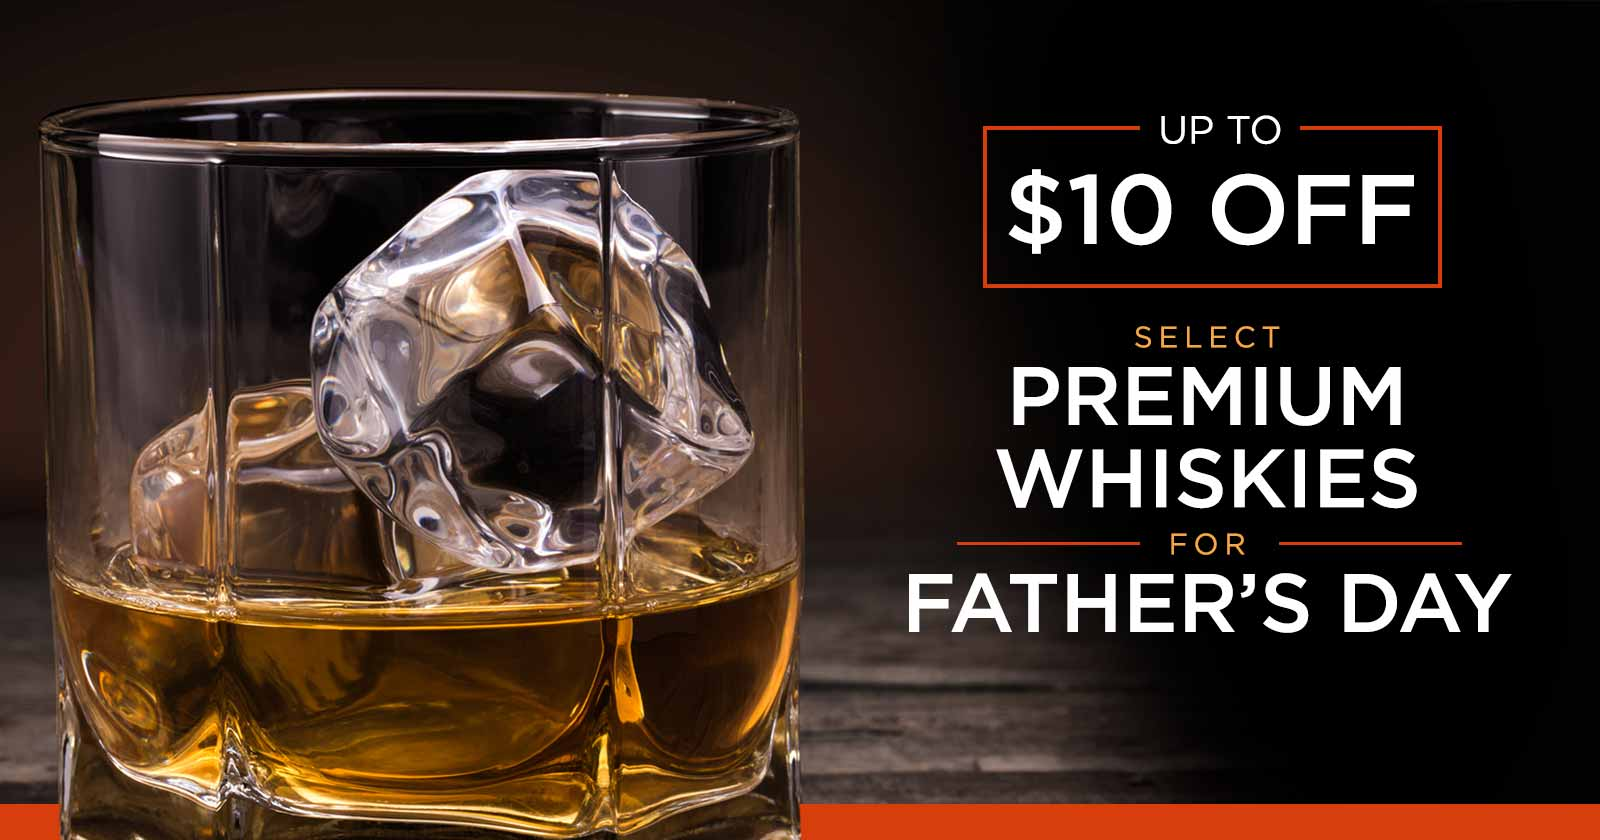 Dad Deserves a Drink! Premium Whiskies for Father's Day